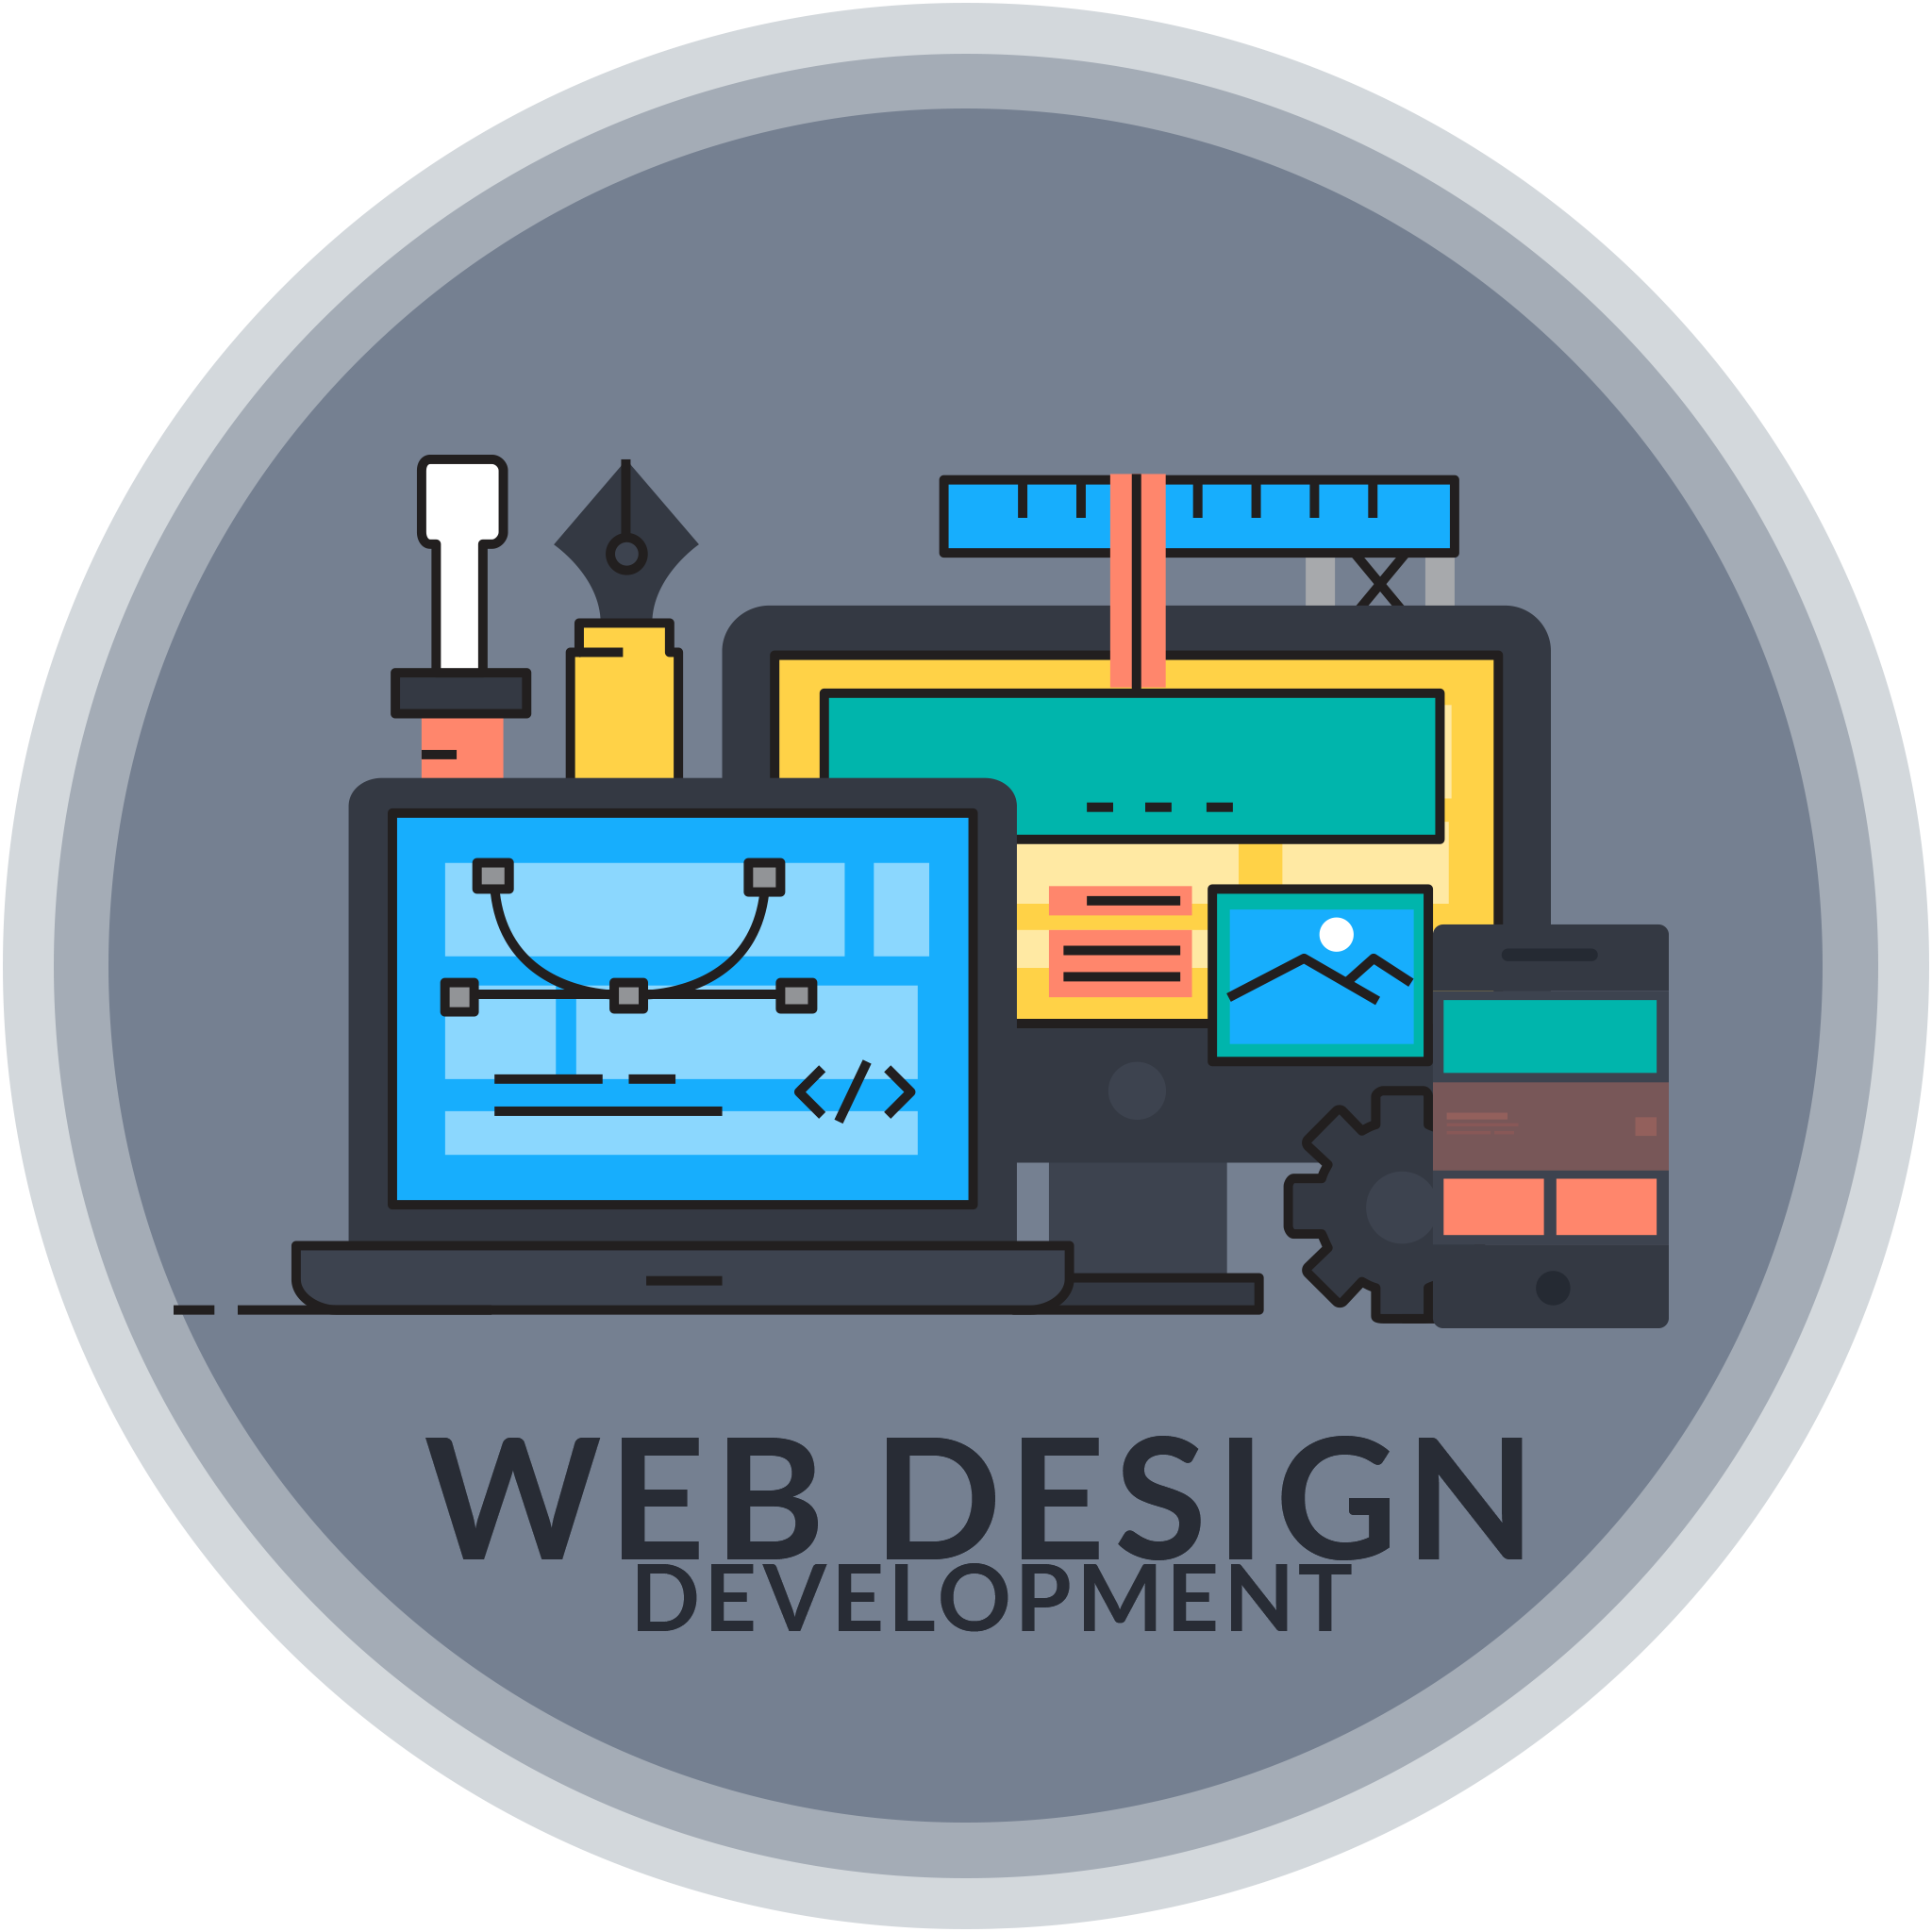 Benefits of Web Design and Development